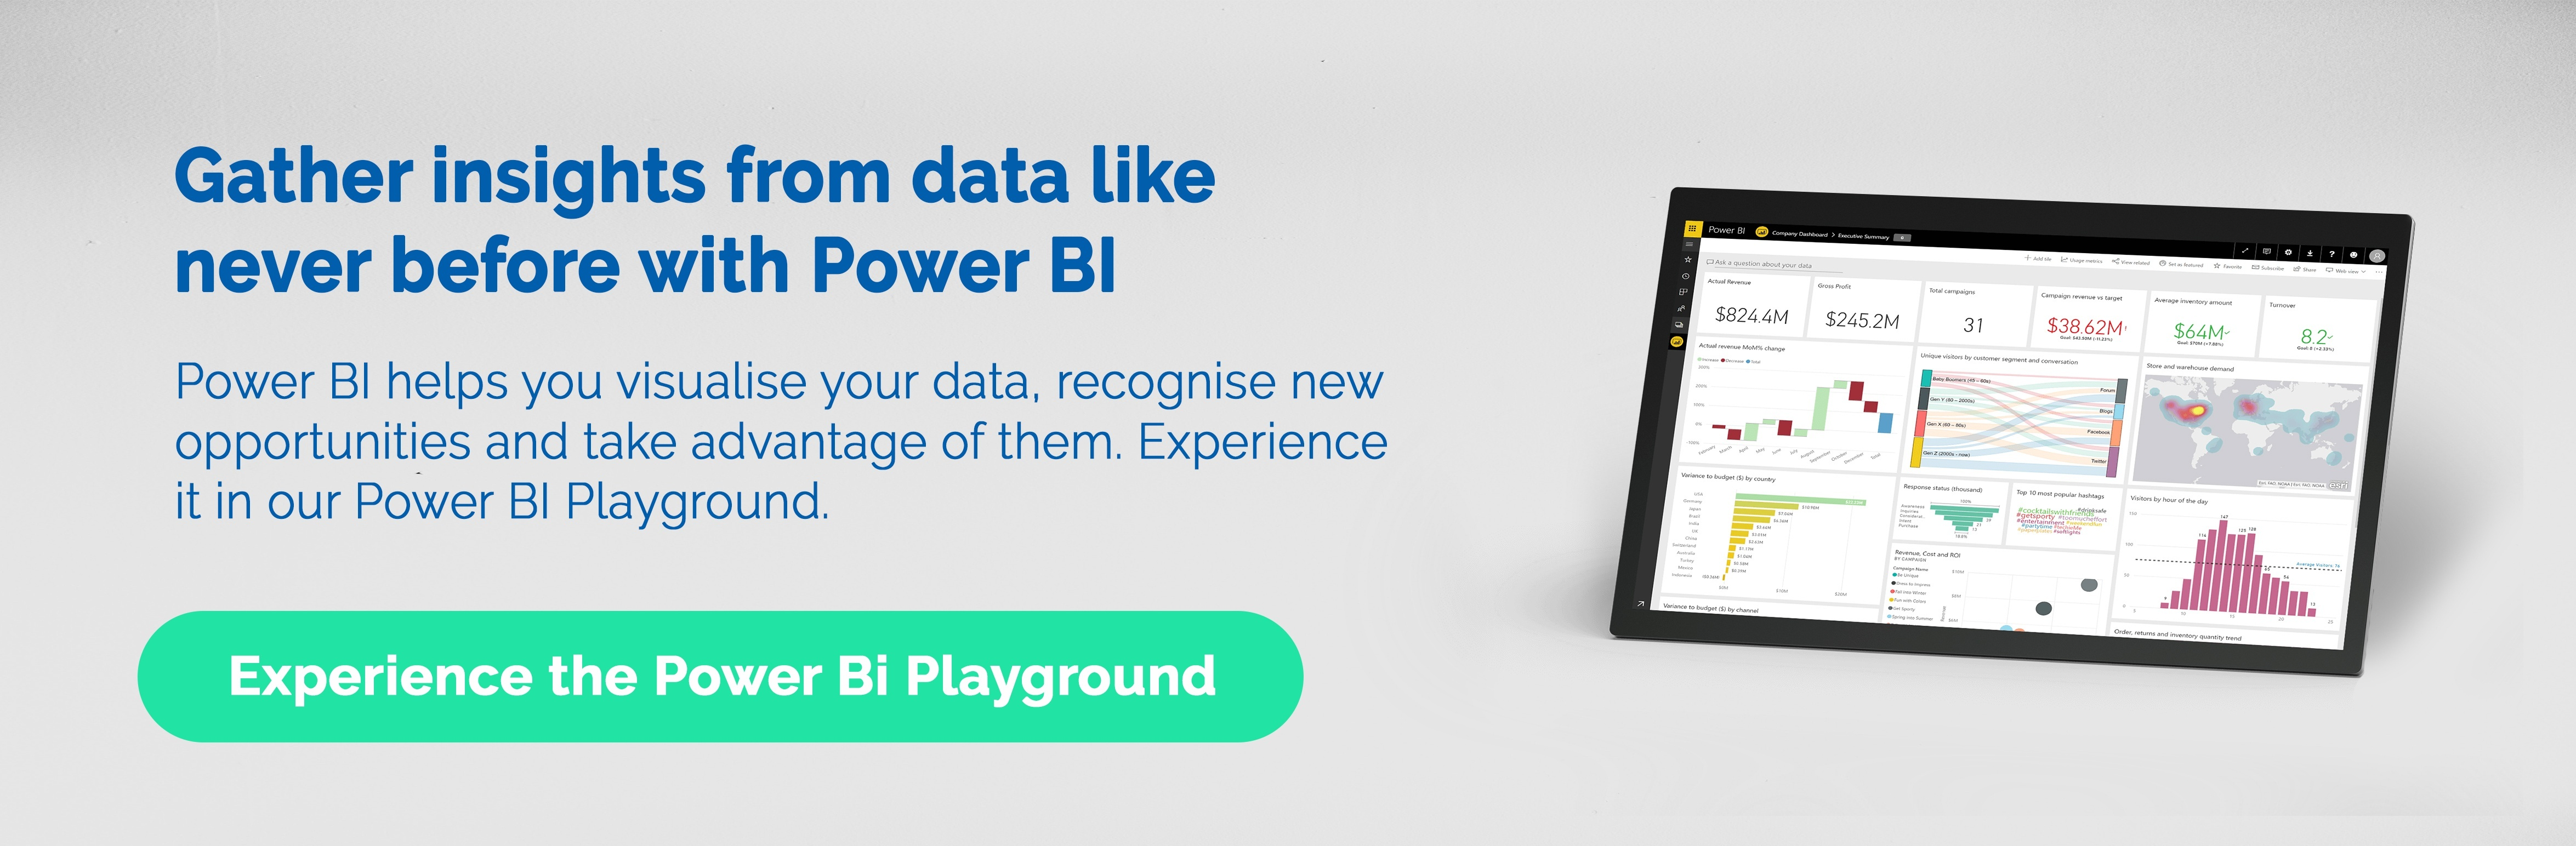 Power BI Playground